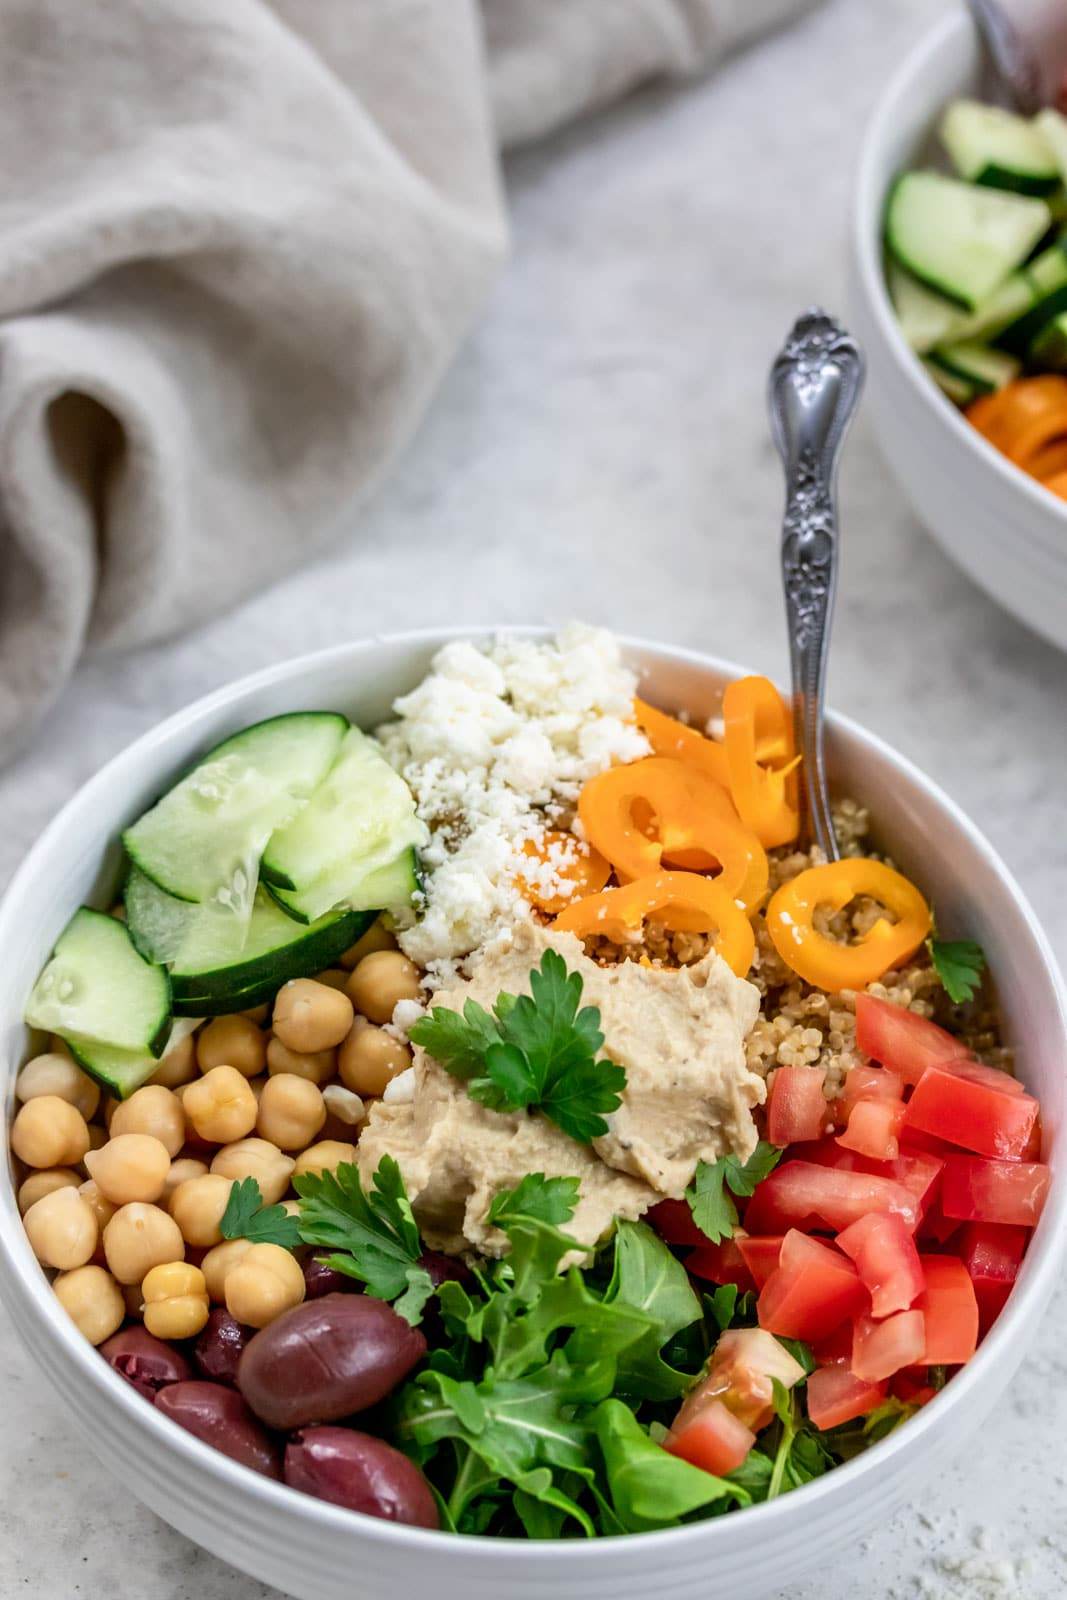 bowl of chickpeas, hummus, quinoa and vegetables